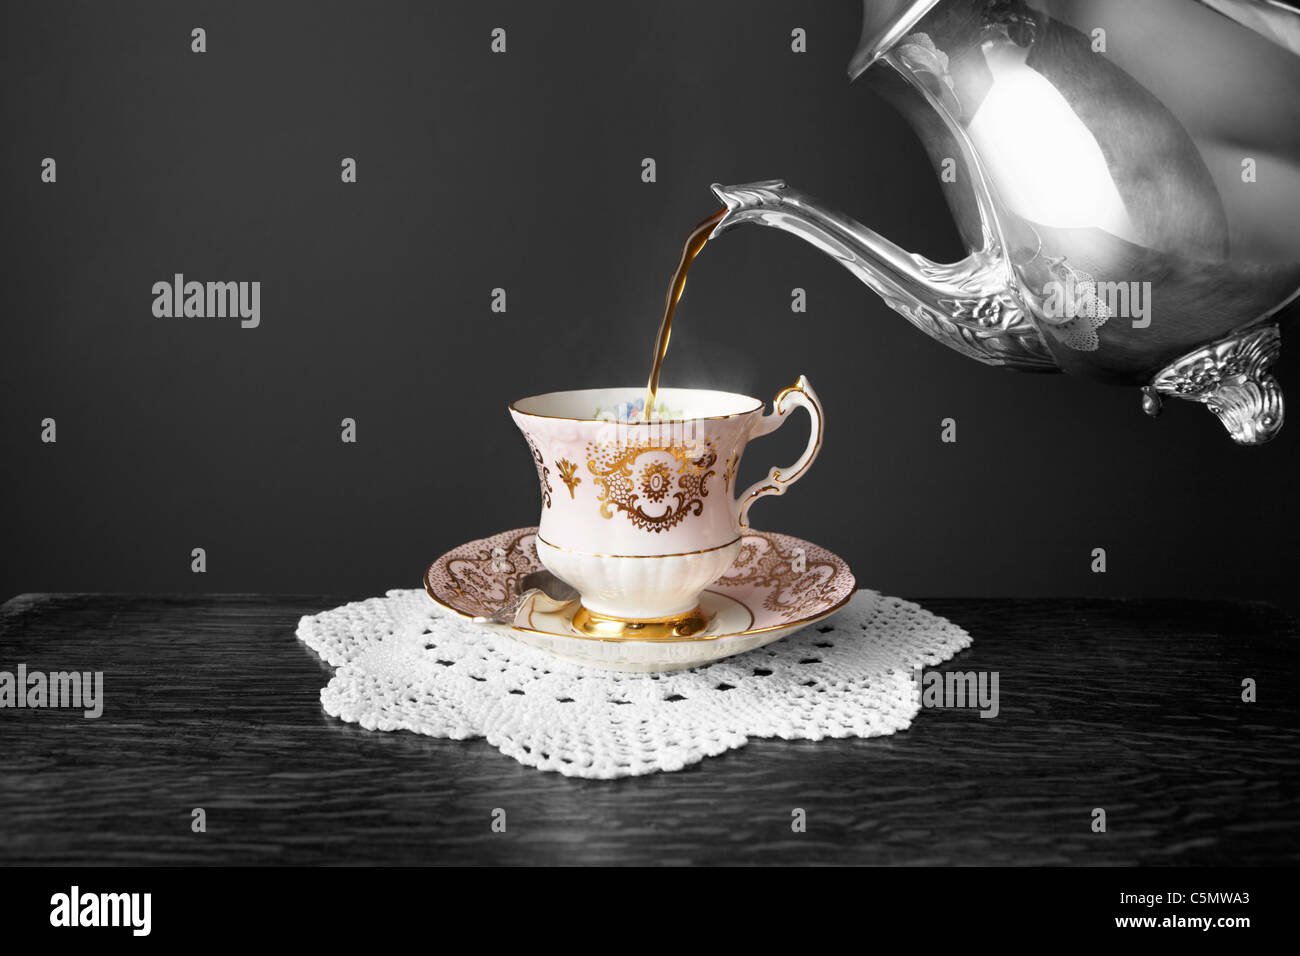 Pouring freshly brewed tea from a silver teapot into a vintage fine bone china tea cup.Stock Photo